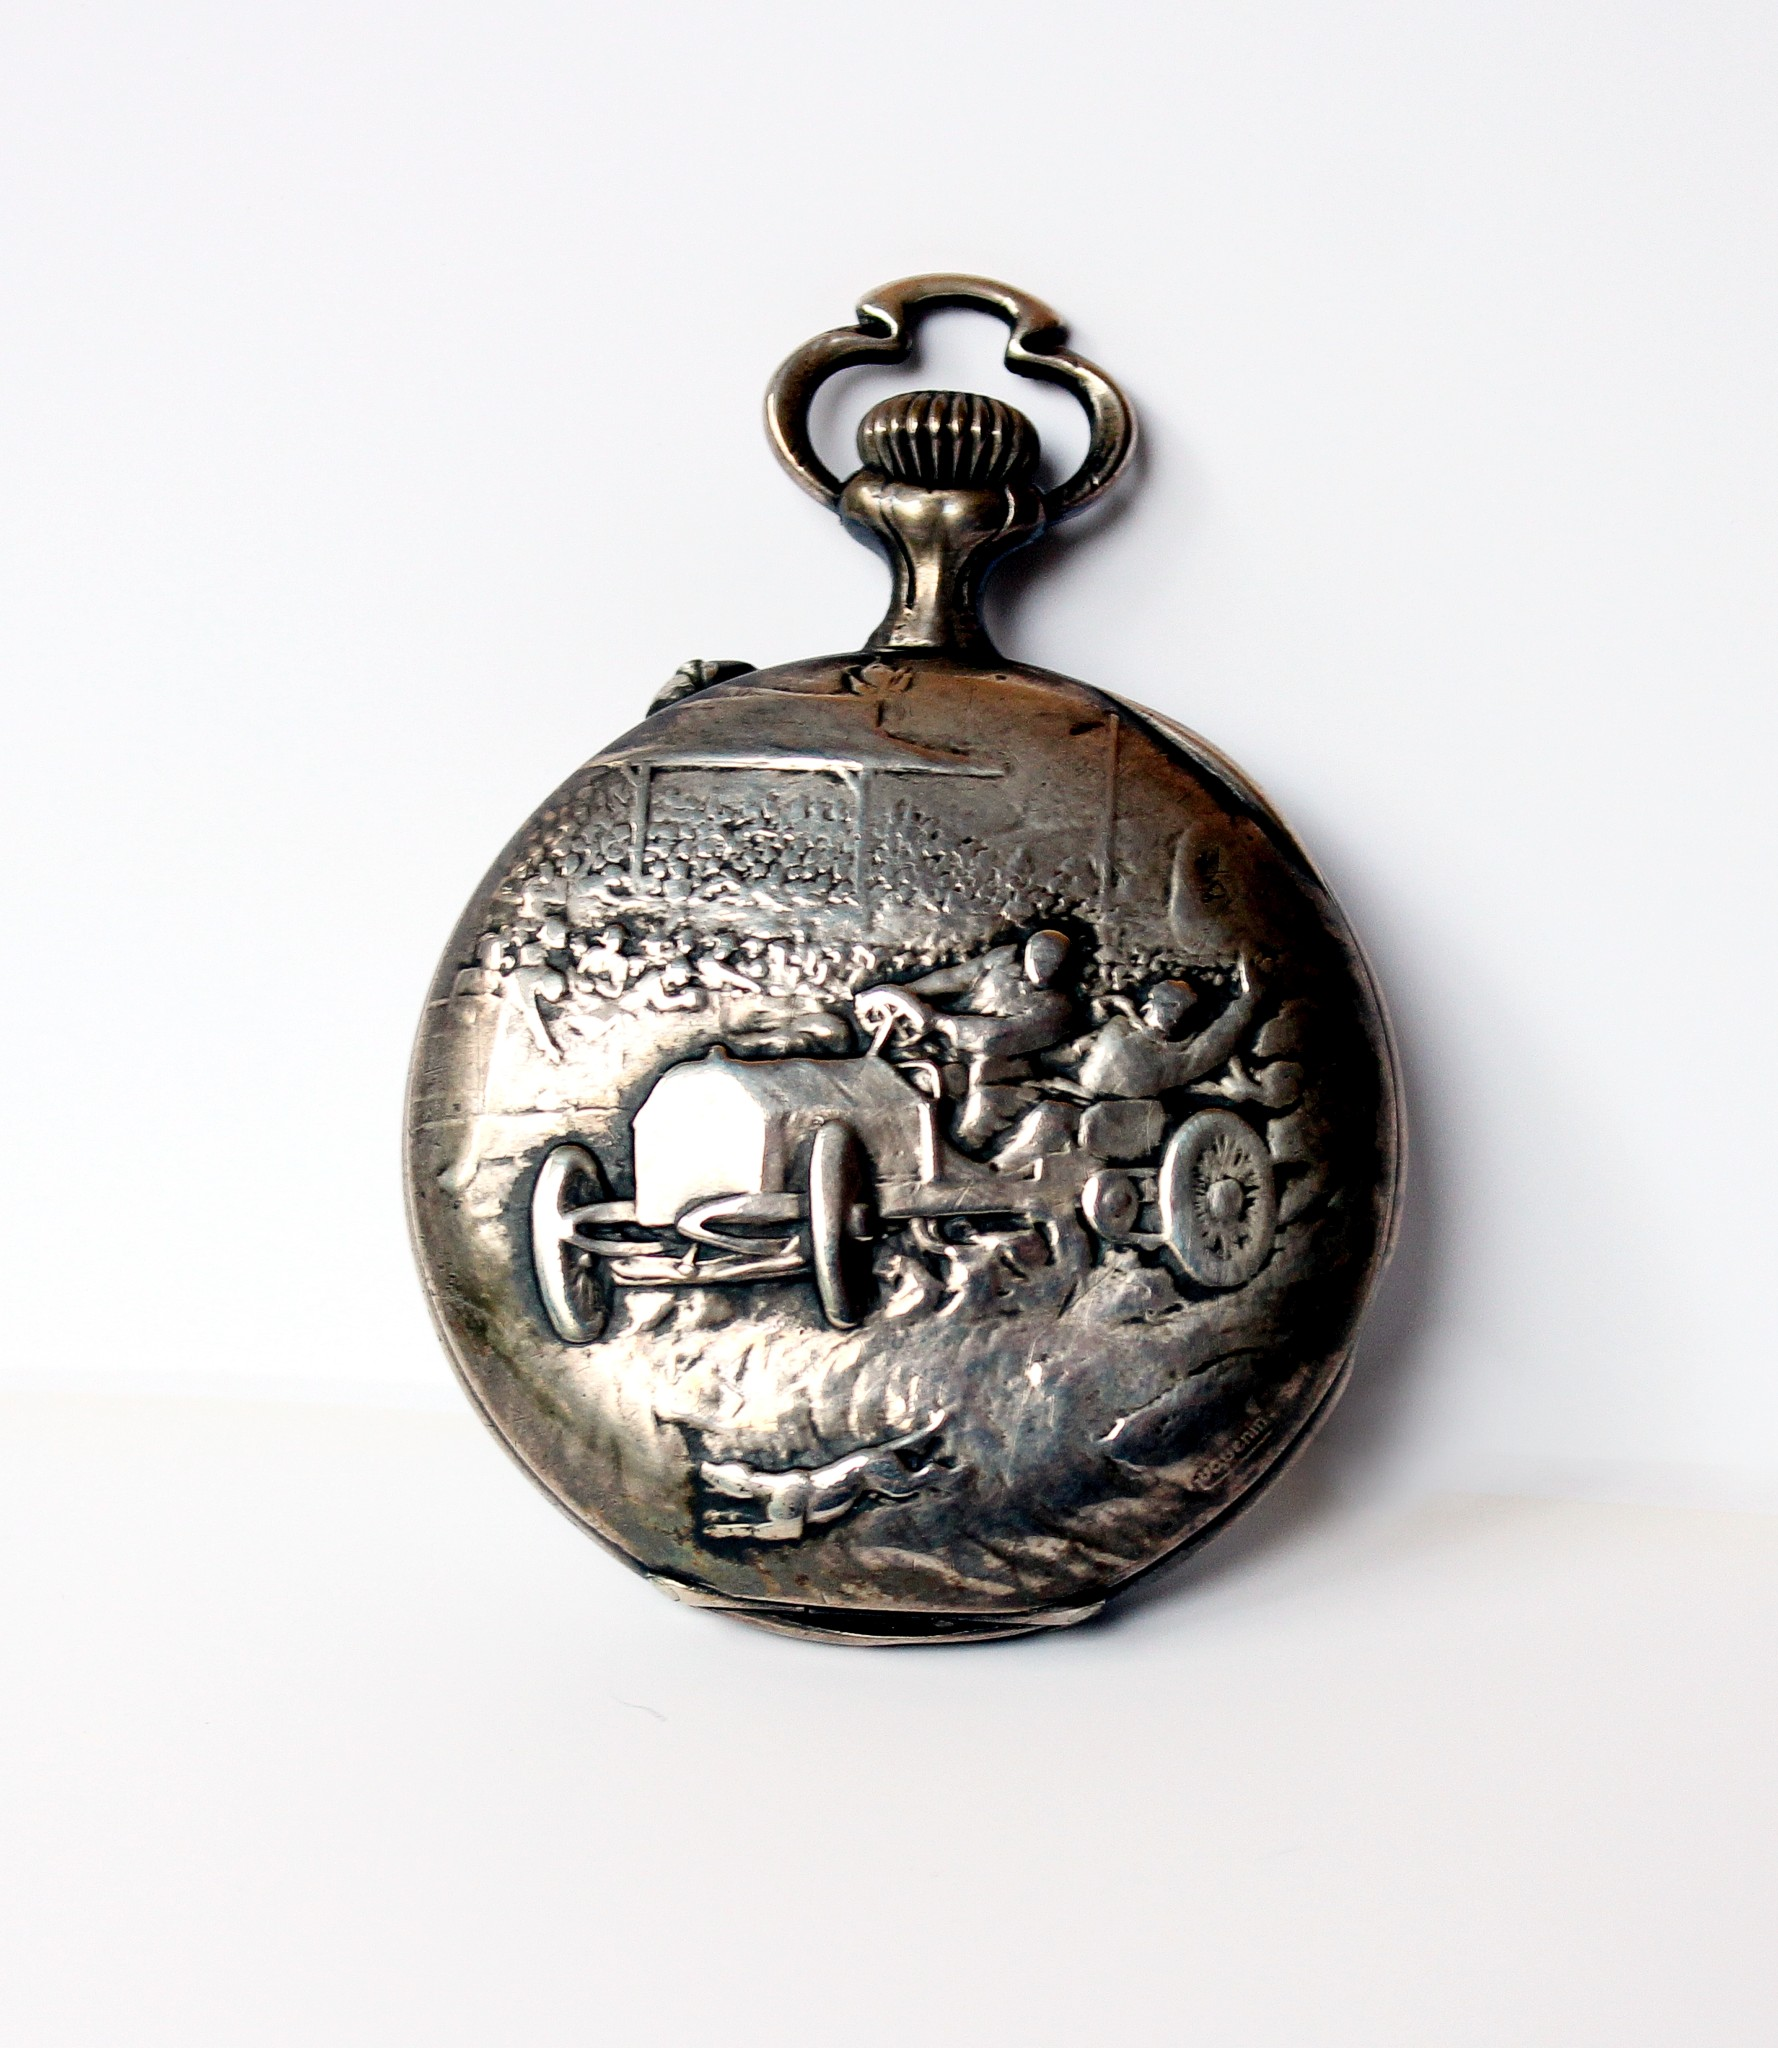 Pocket watch with motoring scene by Climax